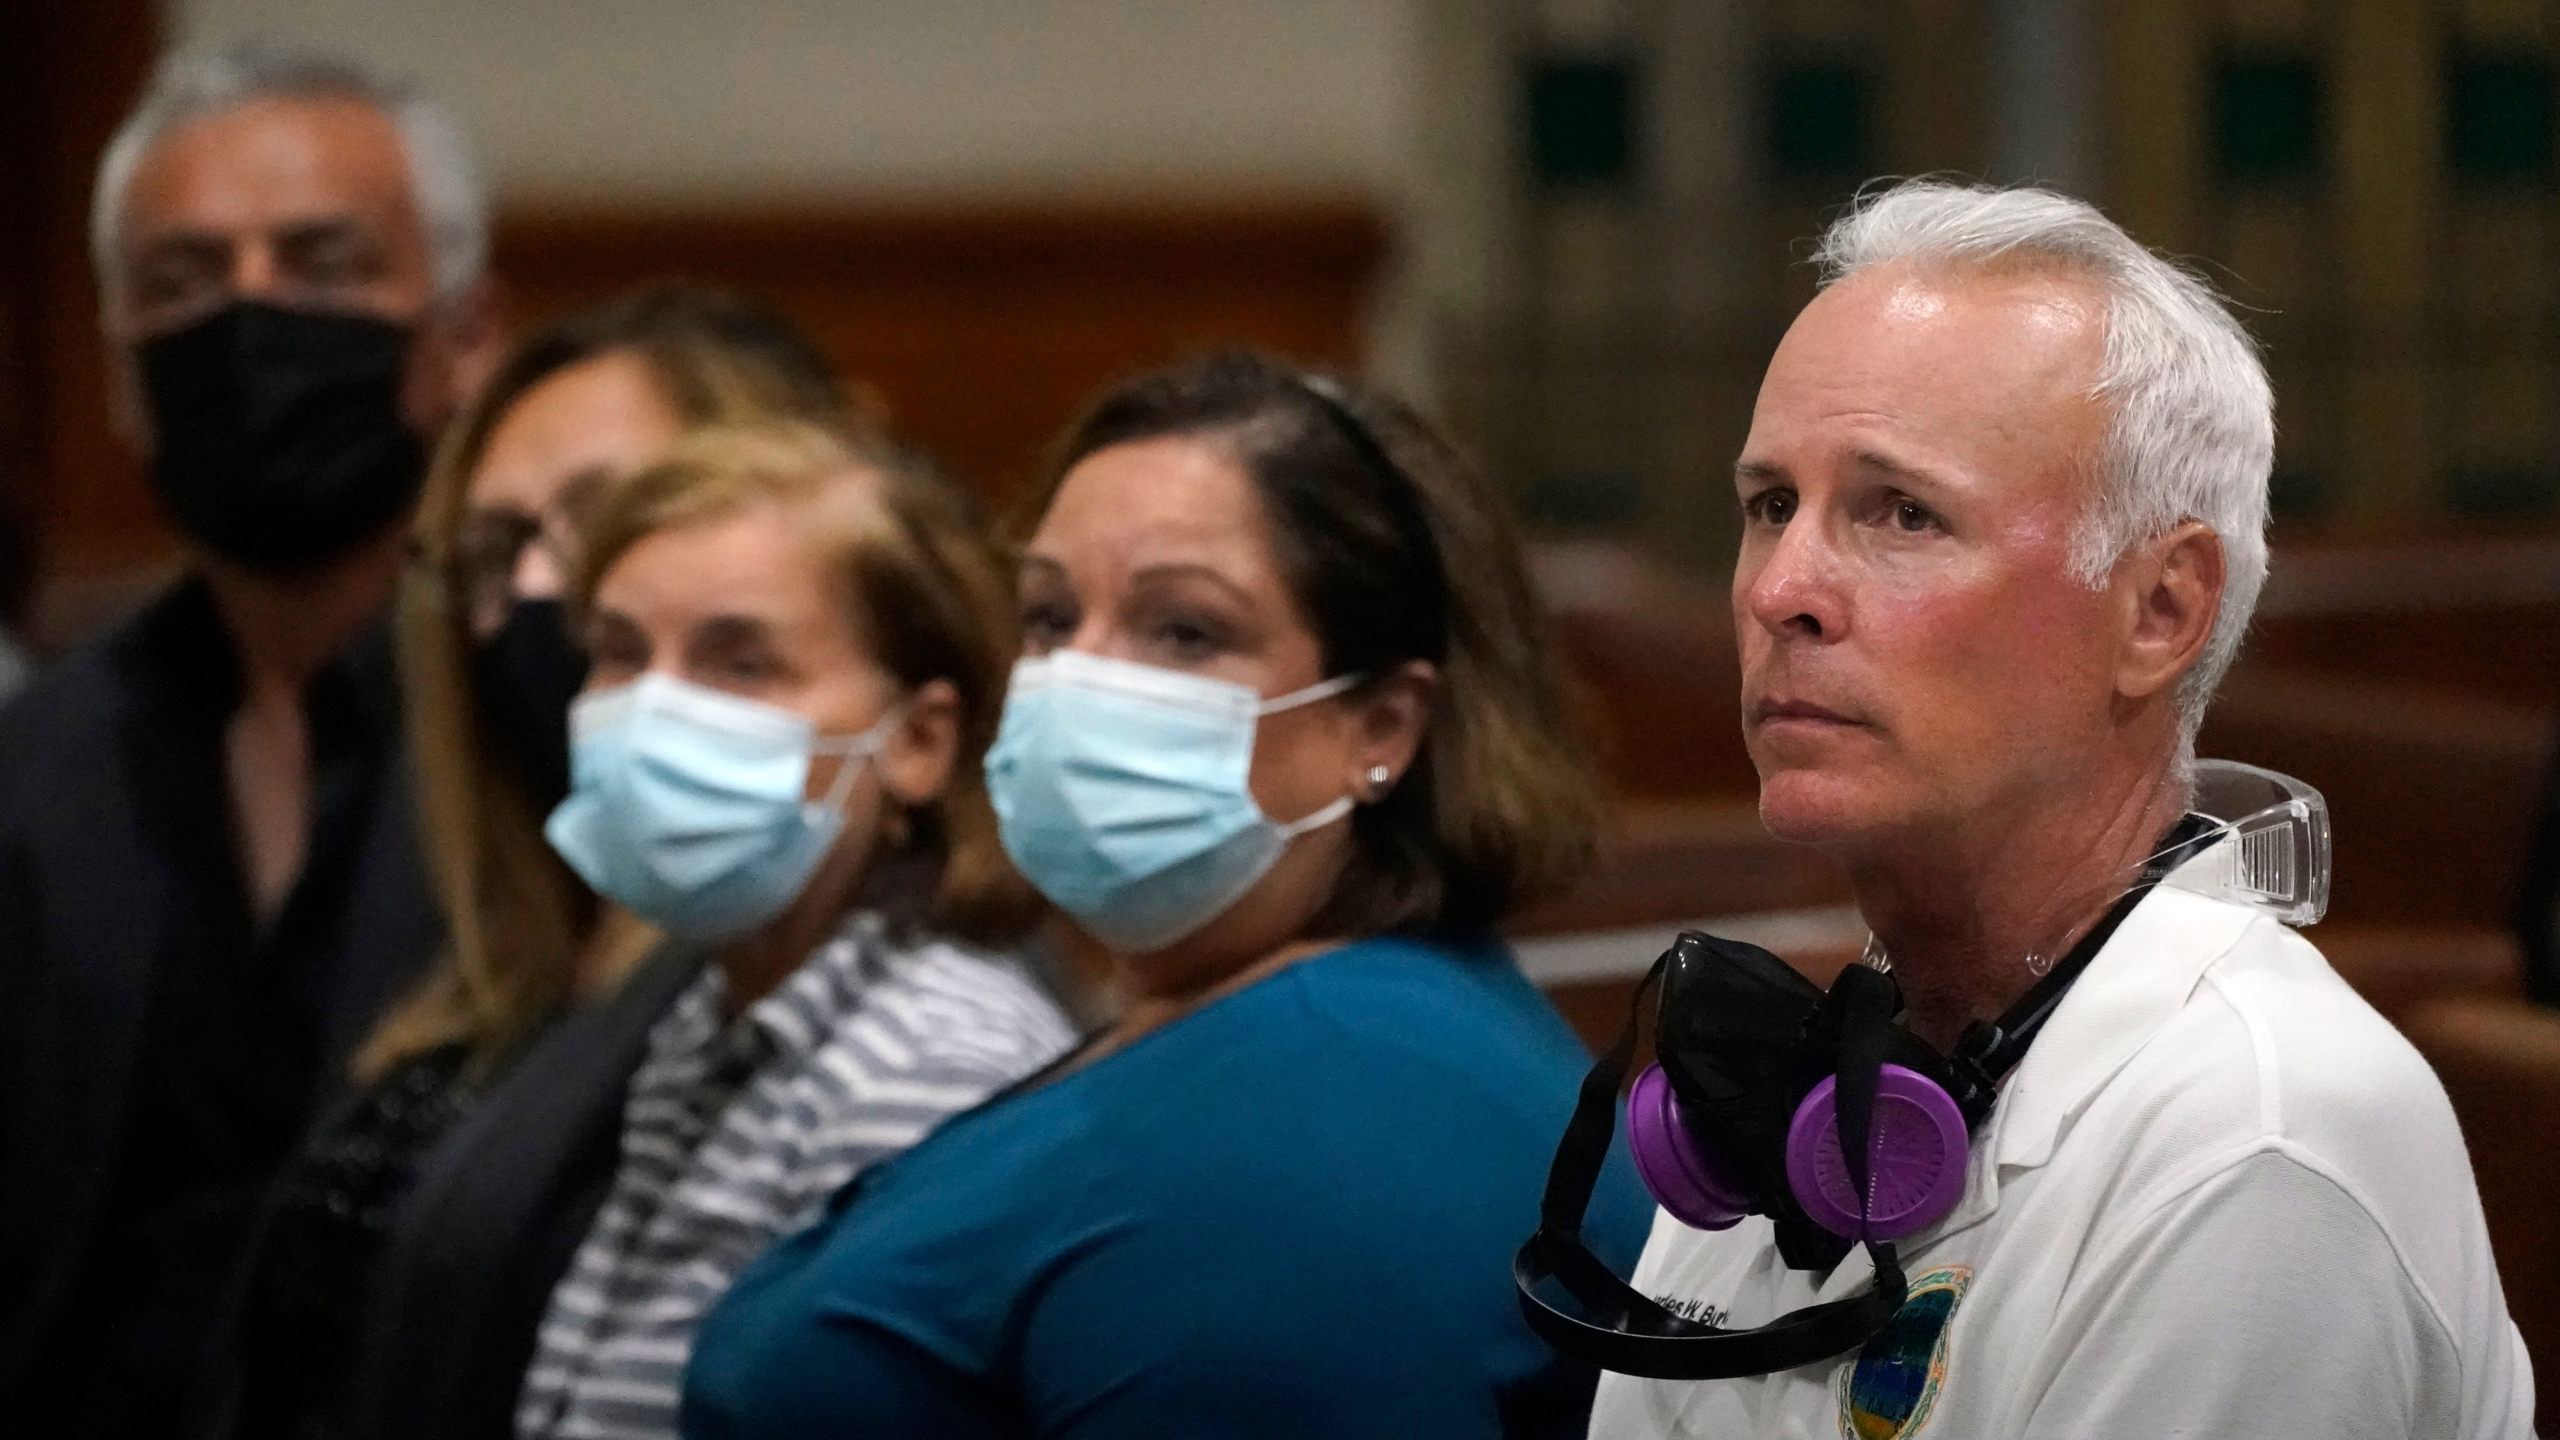 Surfside, Fla., Mayor Charles Burkett, right, joins worshipers, late Saturday, June 26, 2021, during a prayer vigil for the victims and families of the Champlain Towers collapsed building in Surfside, at the nearby St. Joseph Catholic Church in Miami Beach, Fla. Many people were still unaccounted for two days after Thursday's fatal collapse. (AP Photo/Wilfredo Lee)